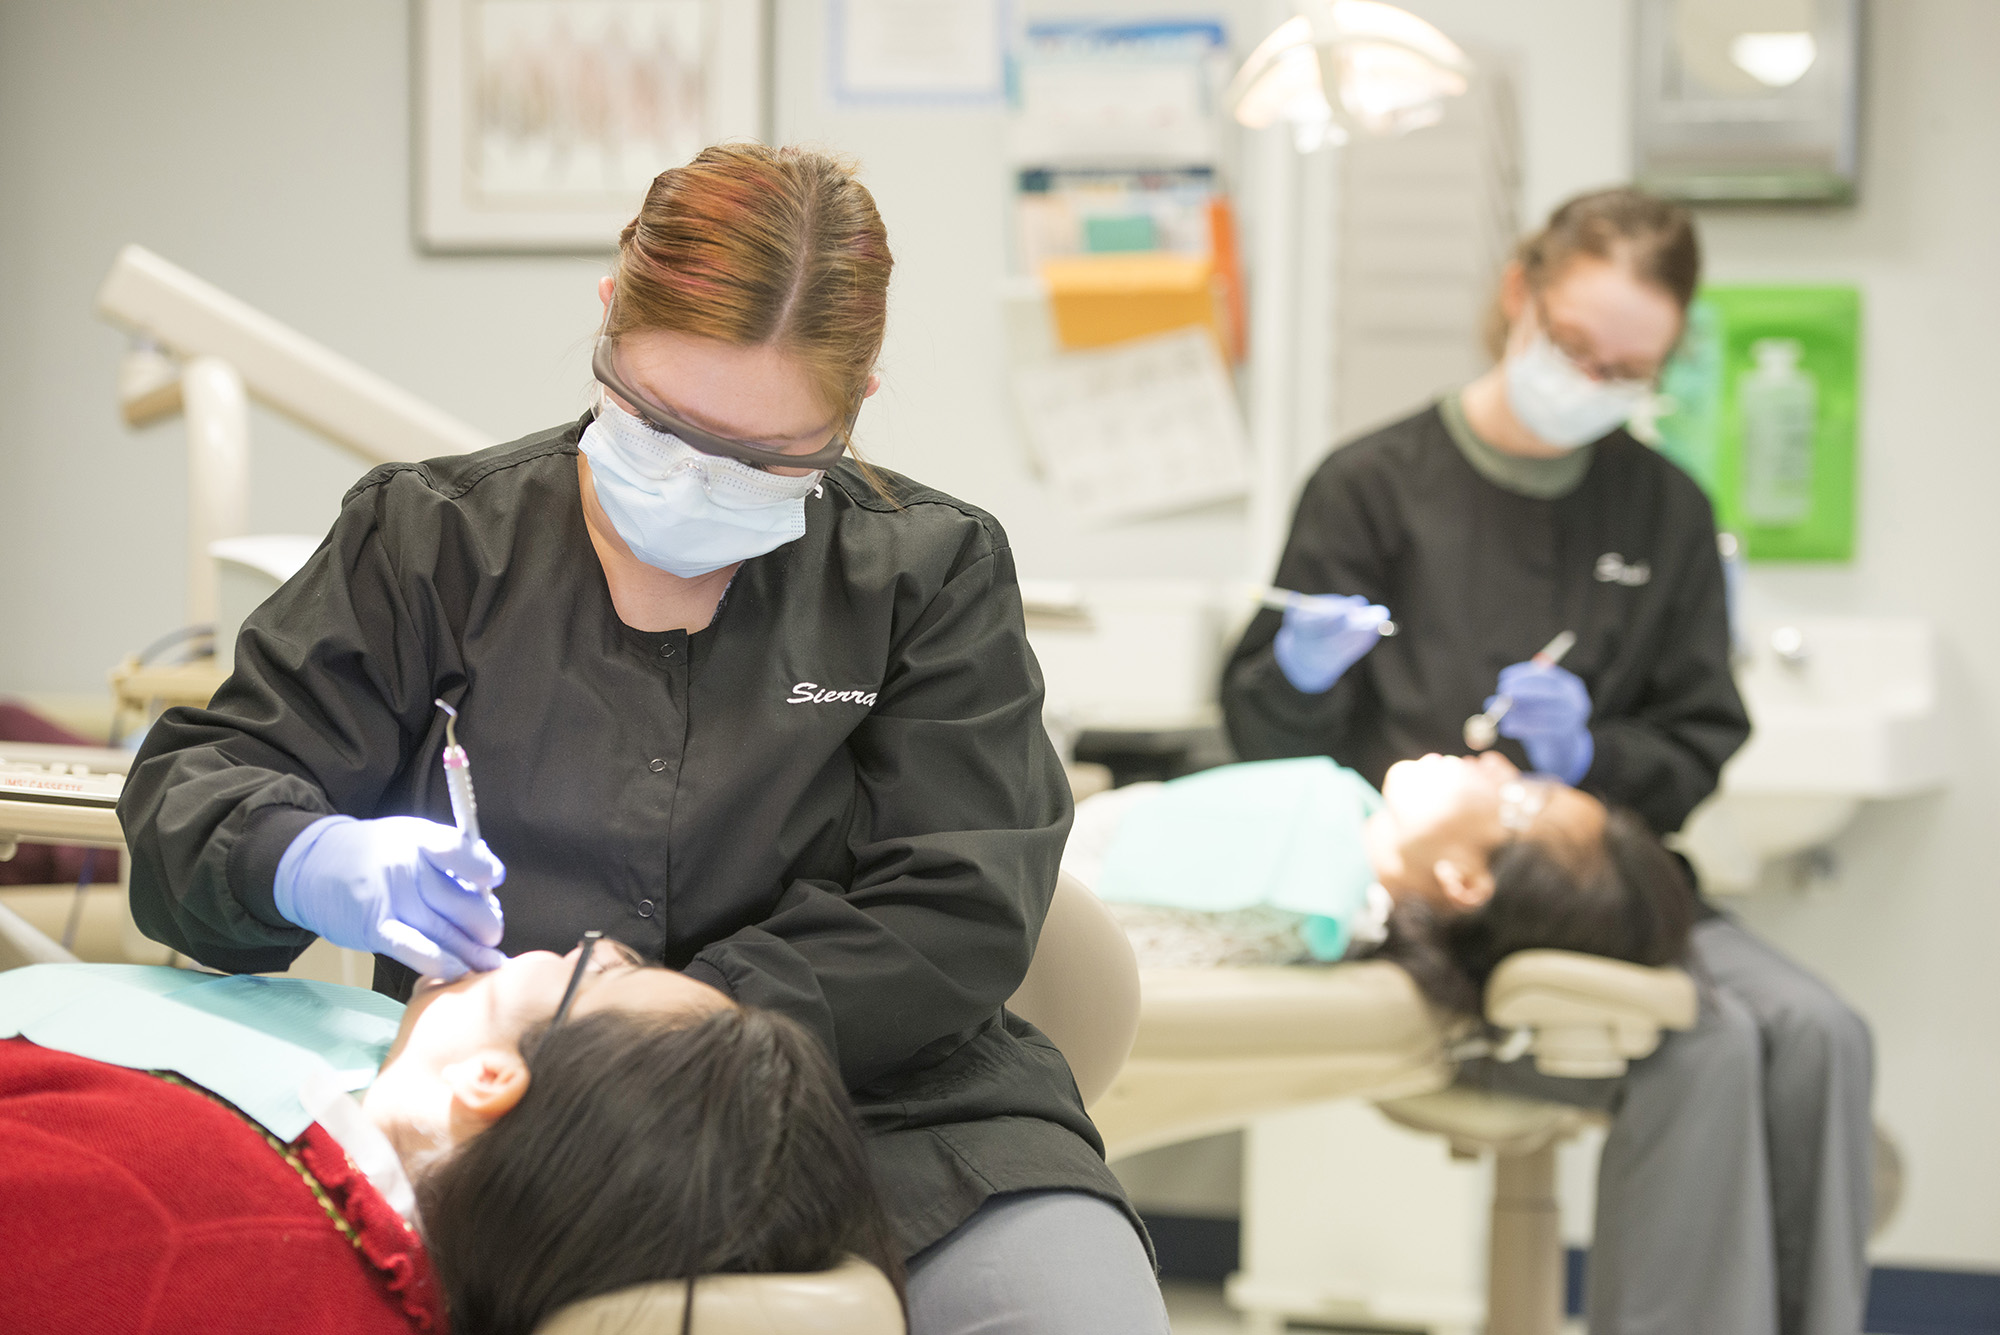 Dental Hygiene students clean other students' teeth in the Dental Hygiene Clinic.